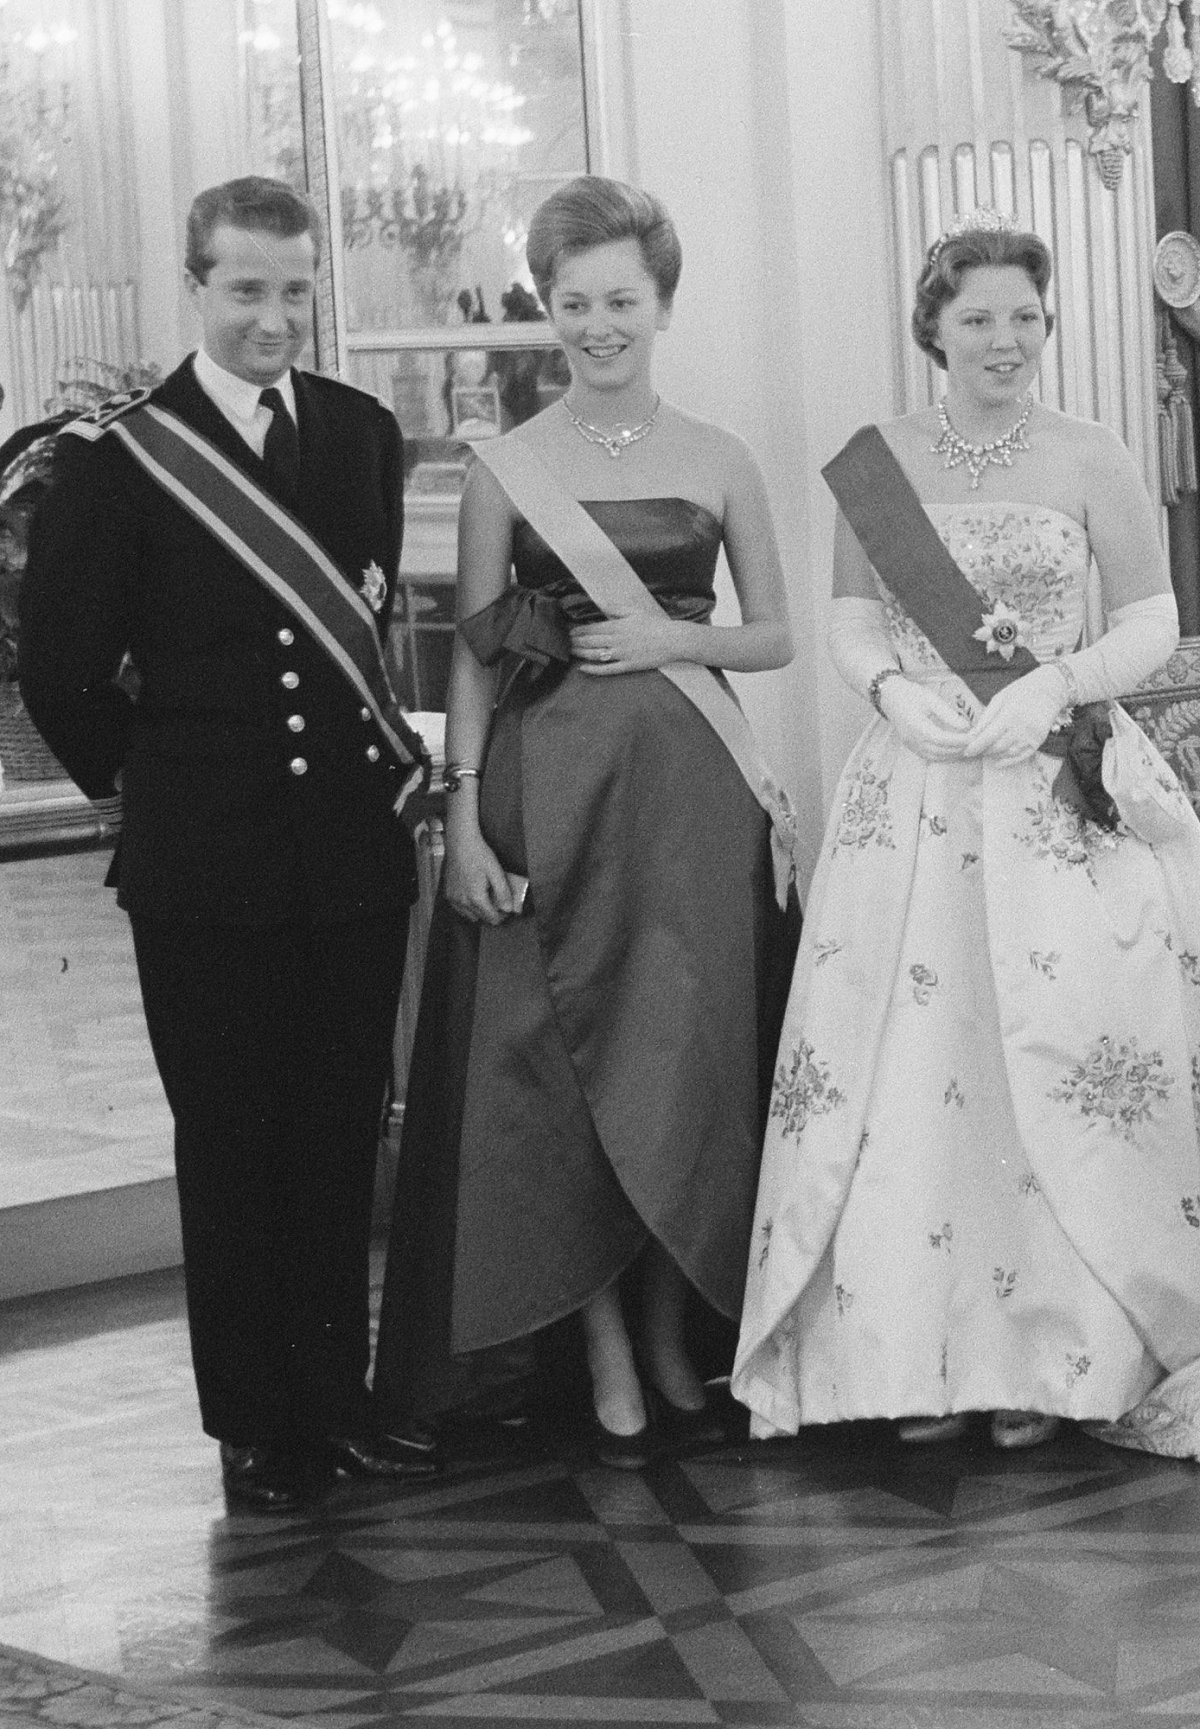 Second day of the Royal visit to Belgium, arrival and visit to Plantin Museum, May 1960